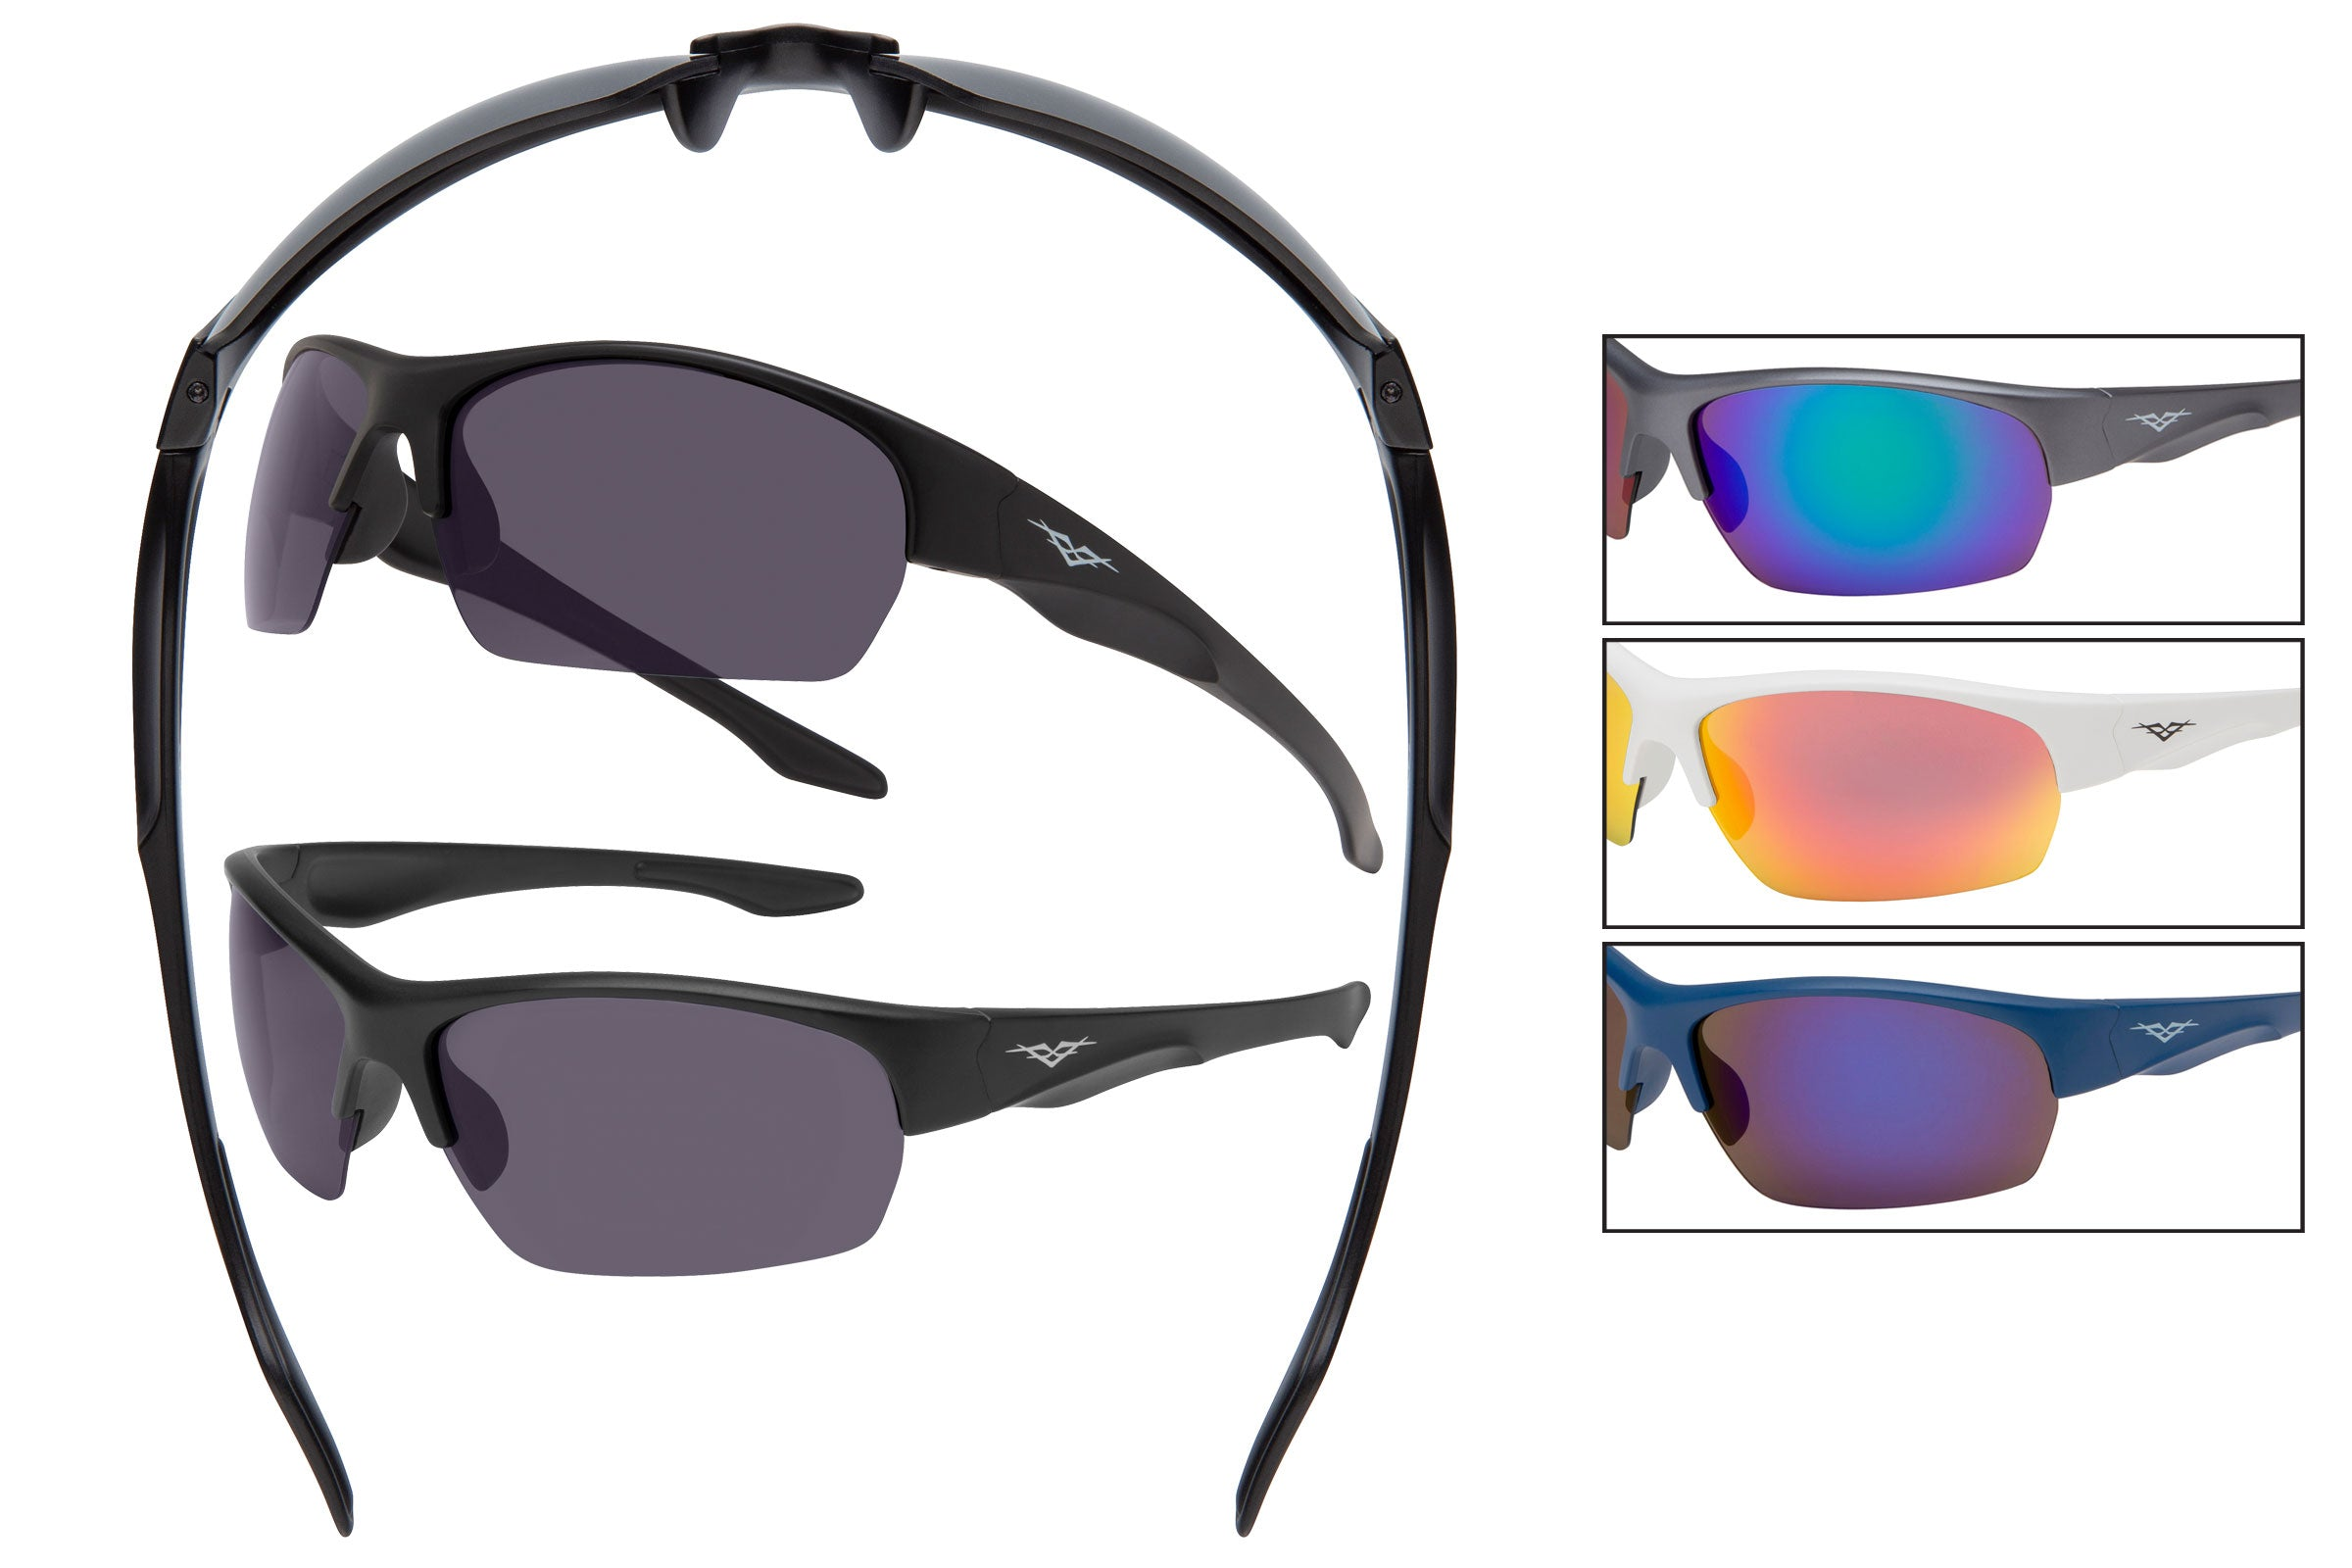 55025 - VertX PC Sports Wrap Sunglasses